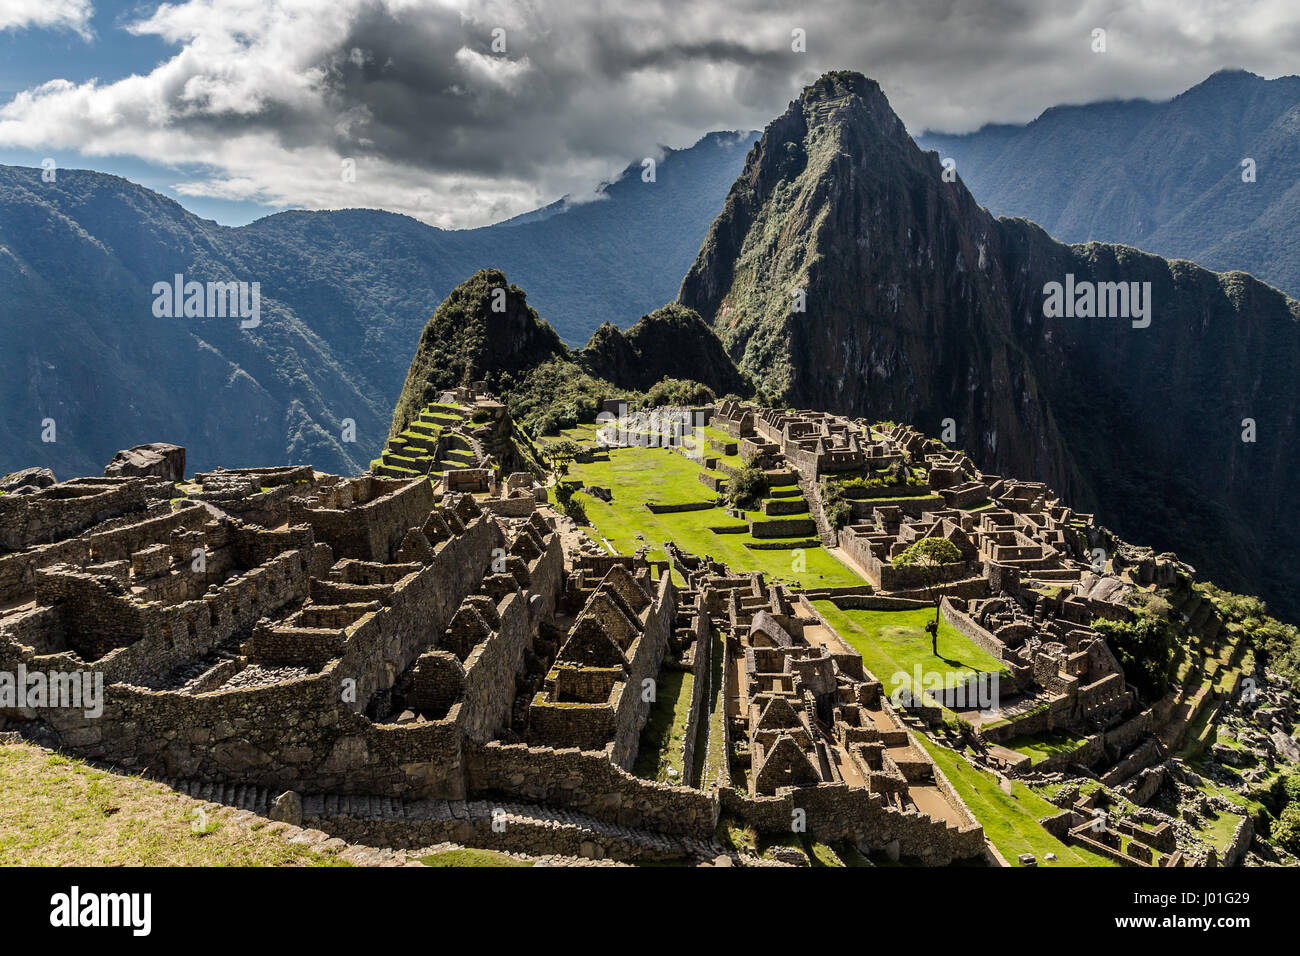 Panoramic view from the top to old Inca ruins and Wayna Picchu, Machu Picchu, Urubamba provnce, Peru - Stock Image